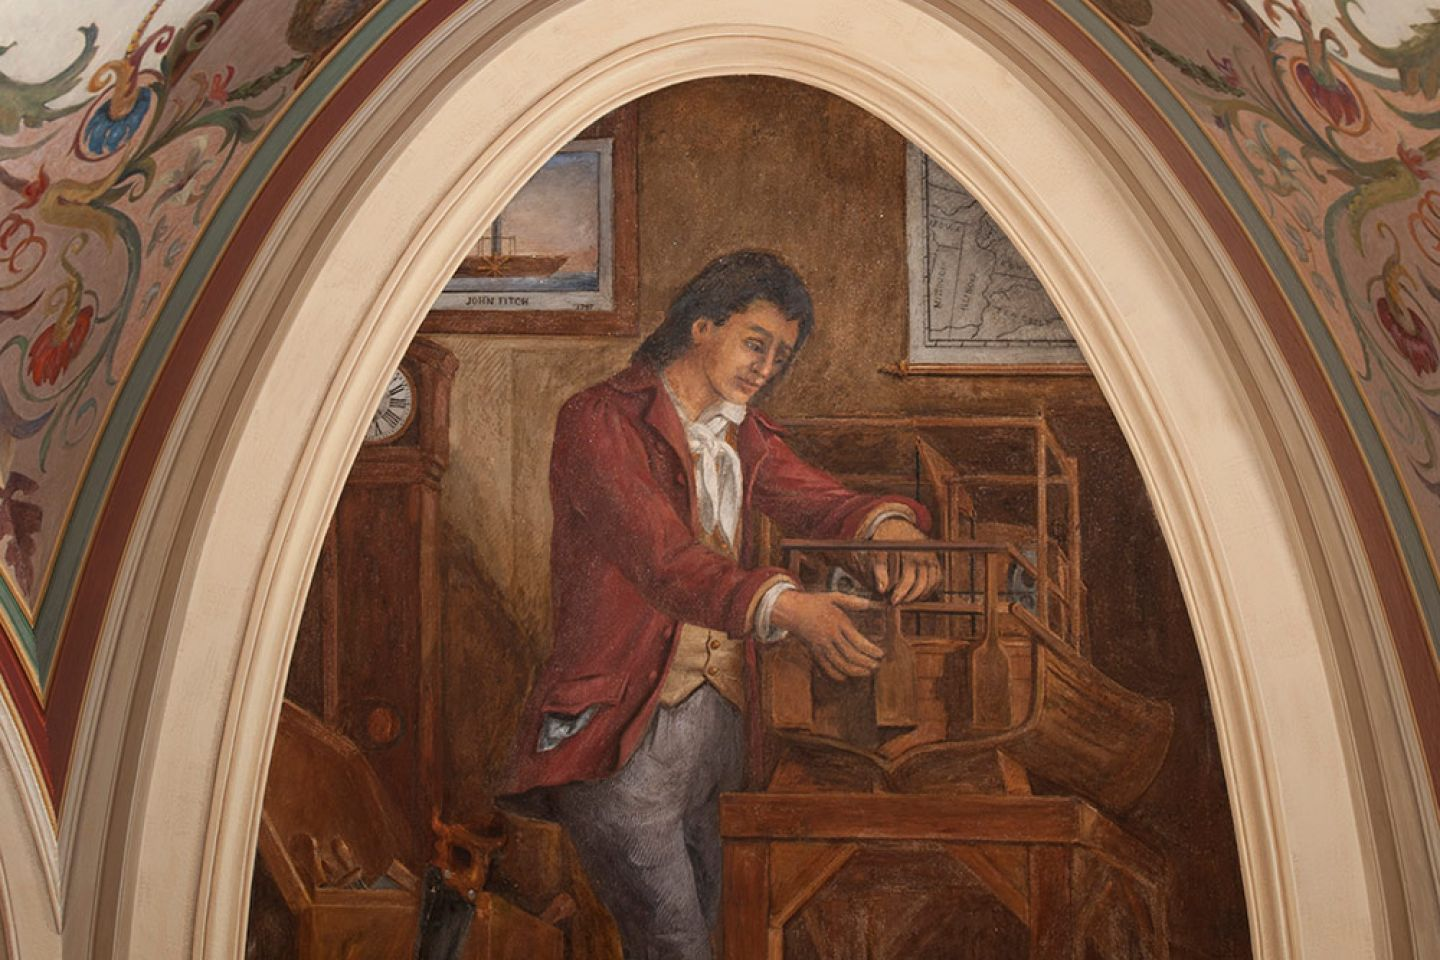 Fresco of John Fitch in the Brumidi Corridors after conservation.